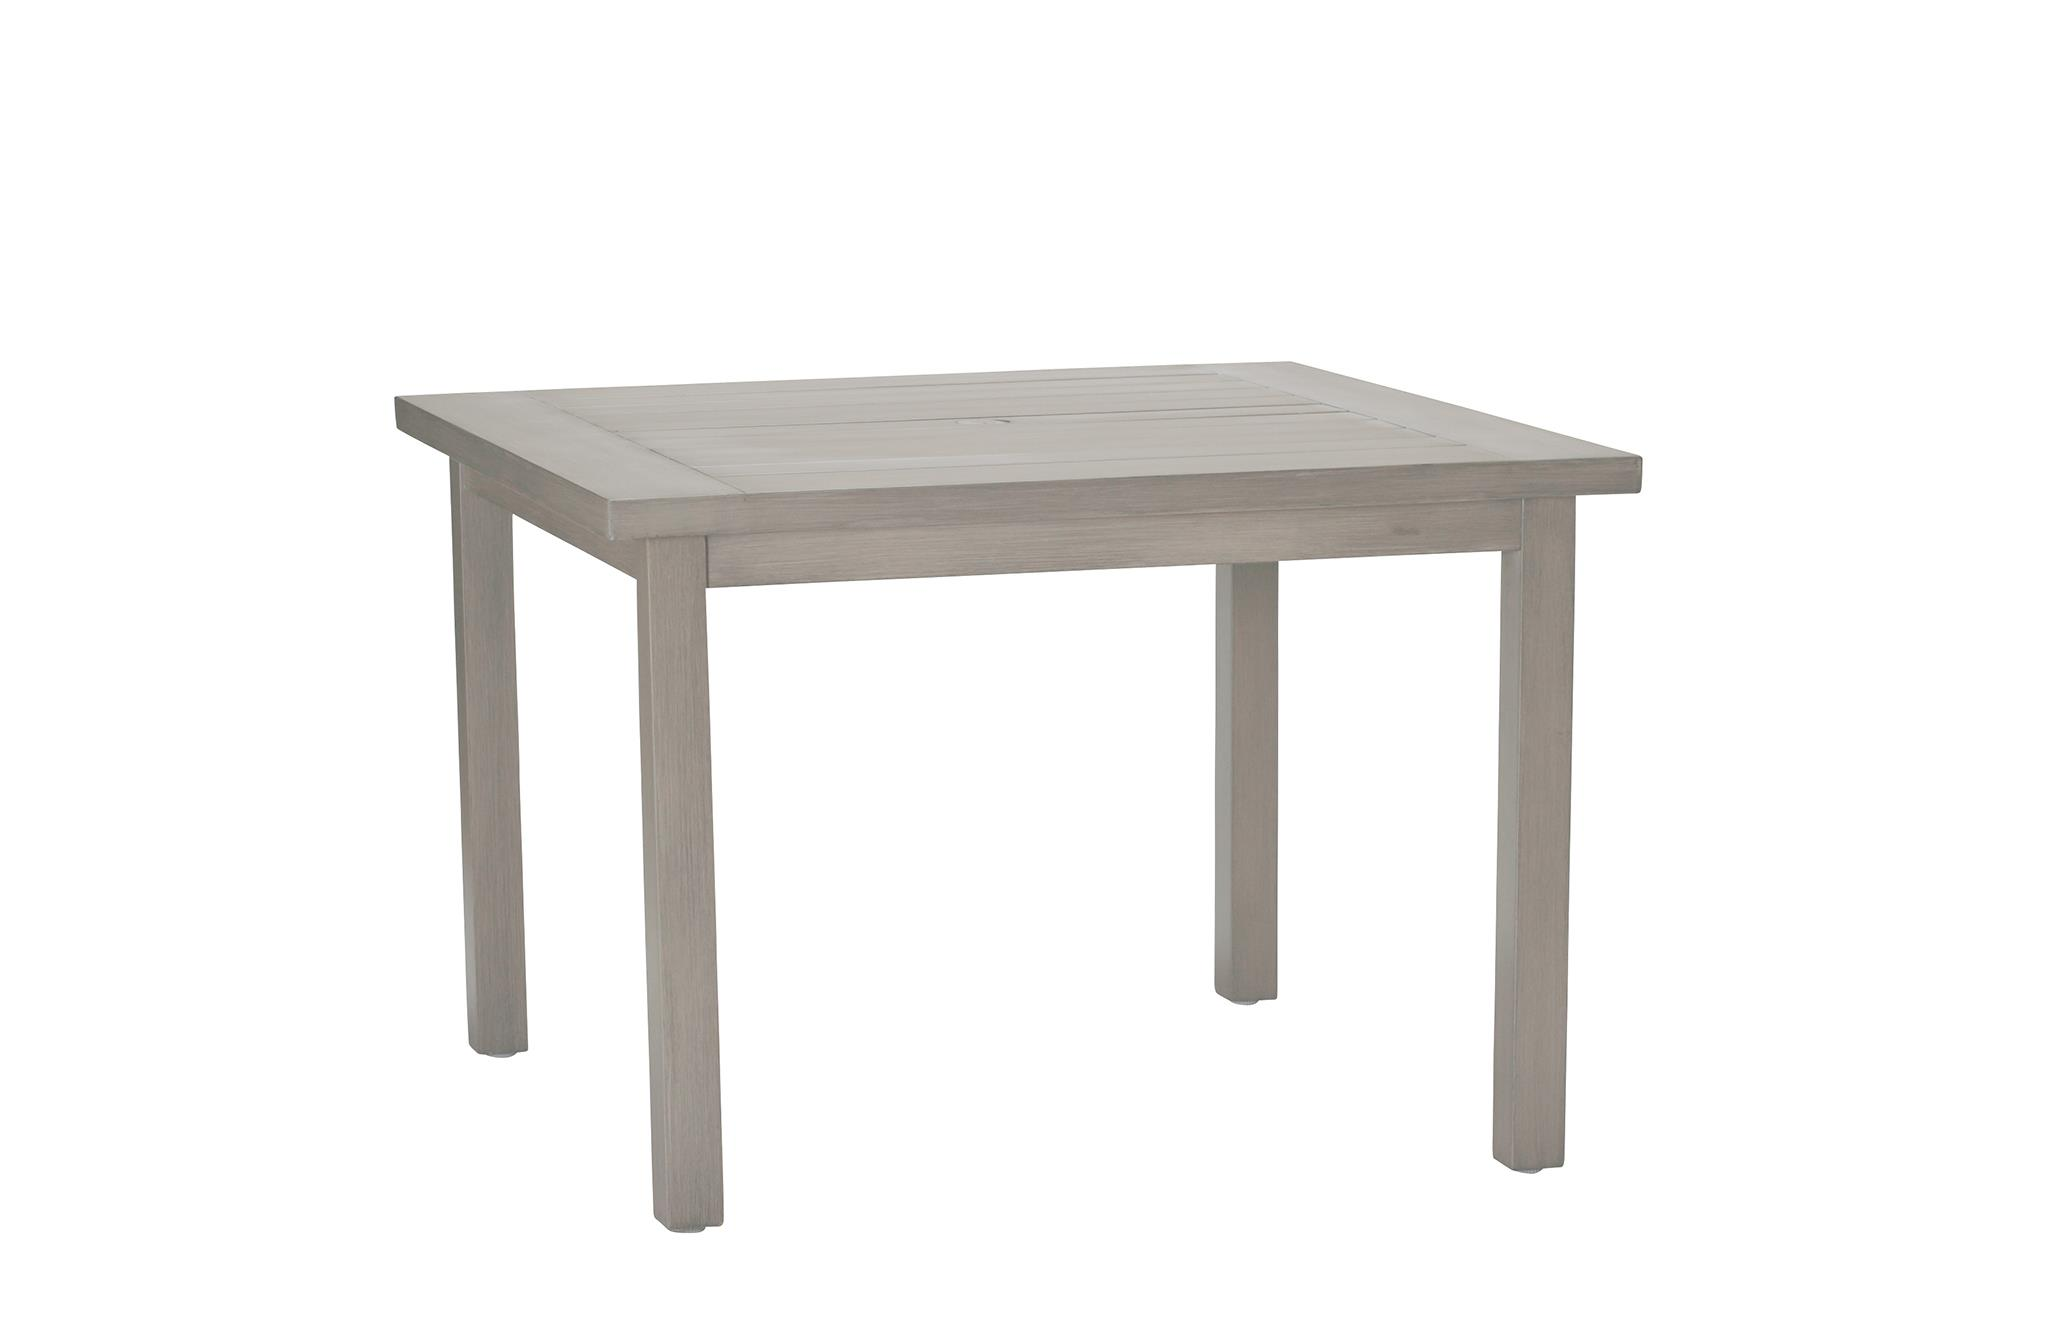 Club Aluminum Club Square Dining Table by Summer Classics at Story & Lee Furniture